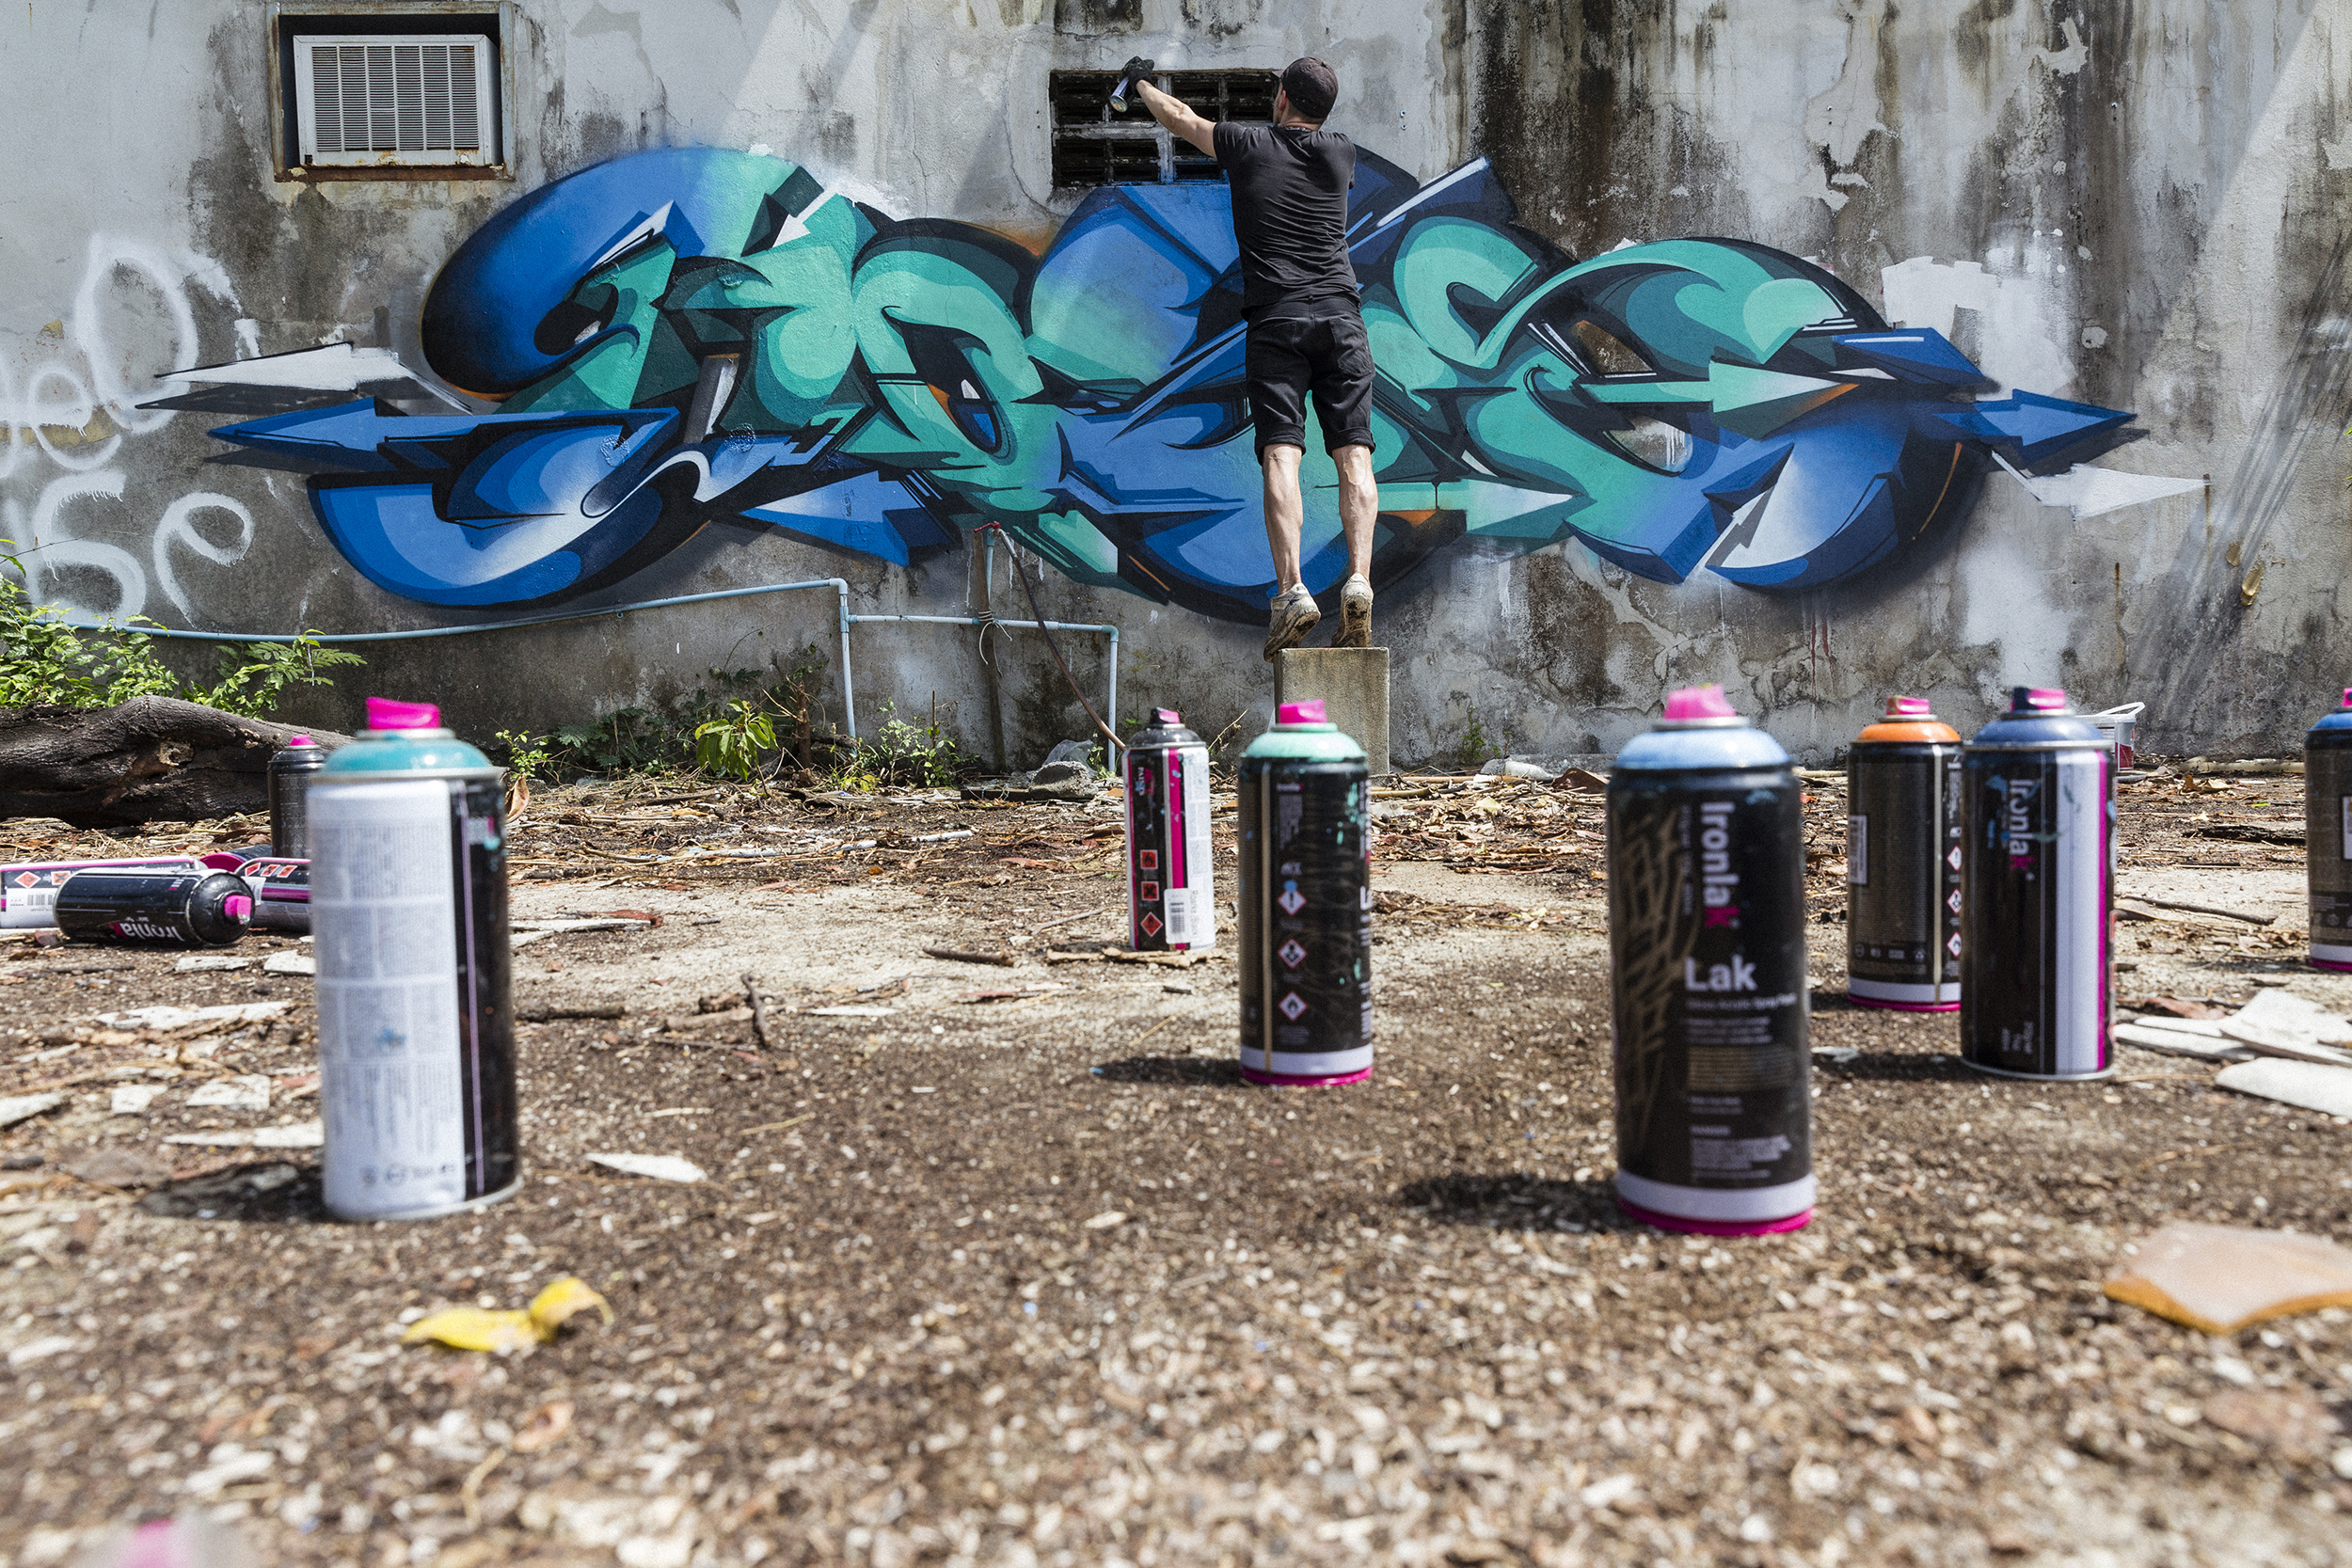 A work by Does - 201702-DOES-Ironlak-Thailand_LukeShirlaw_img_1370